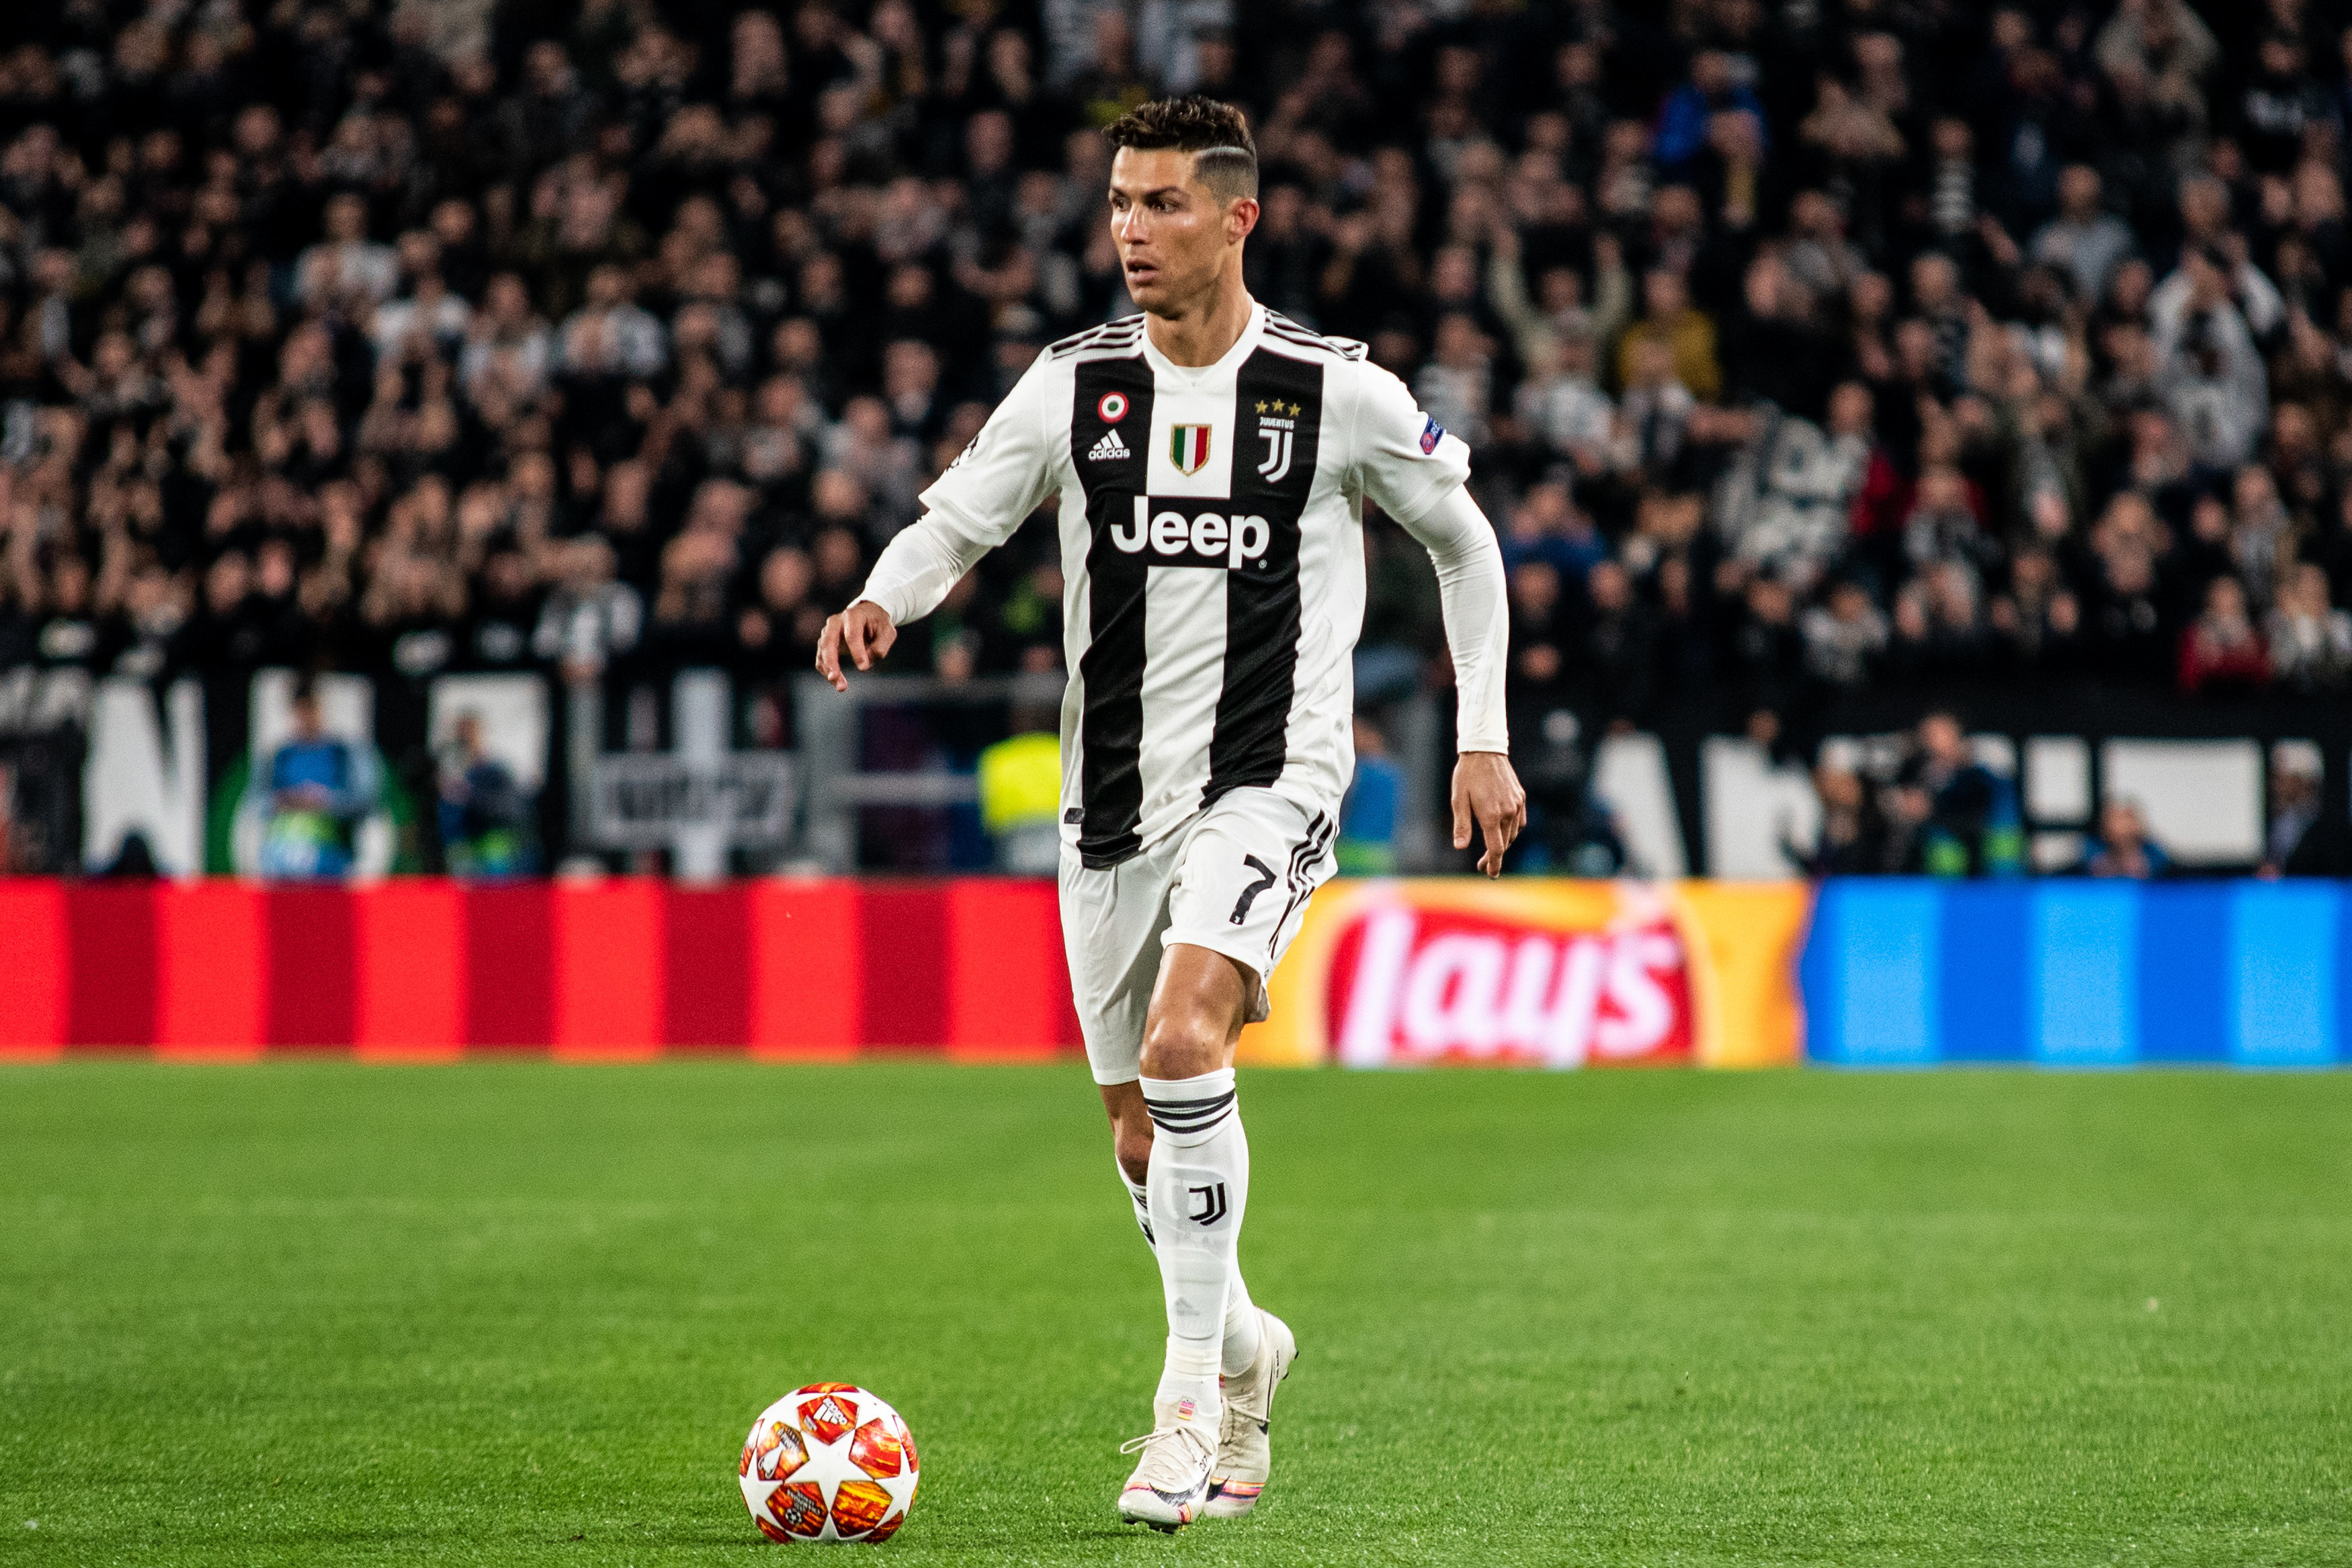 Ronaldo confirms Juventus stay after Serie A success